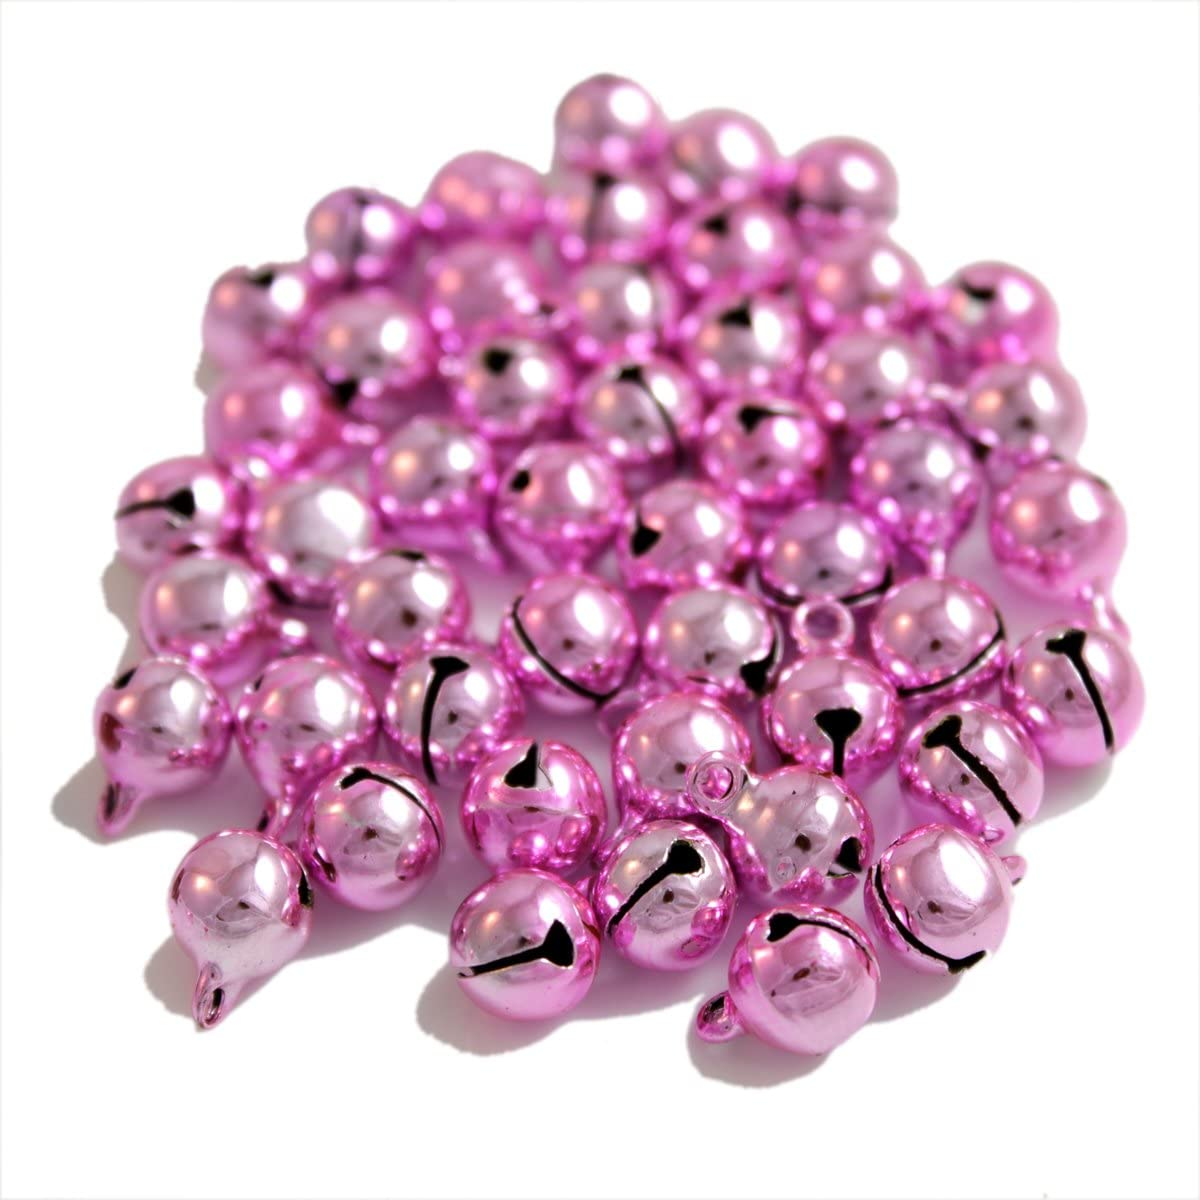 Color argento 11x7 mm Kleenes TH 100x Campanelle sonagli in rame/-/11x7/mm